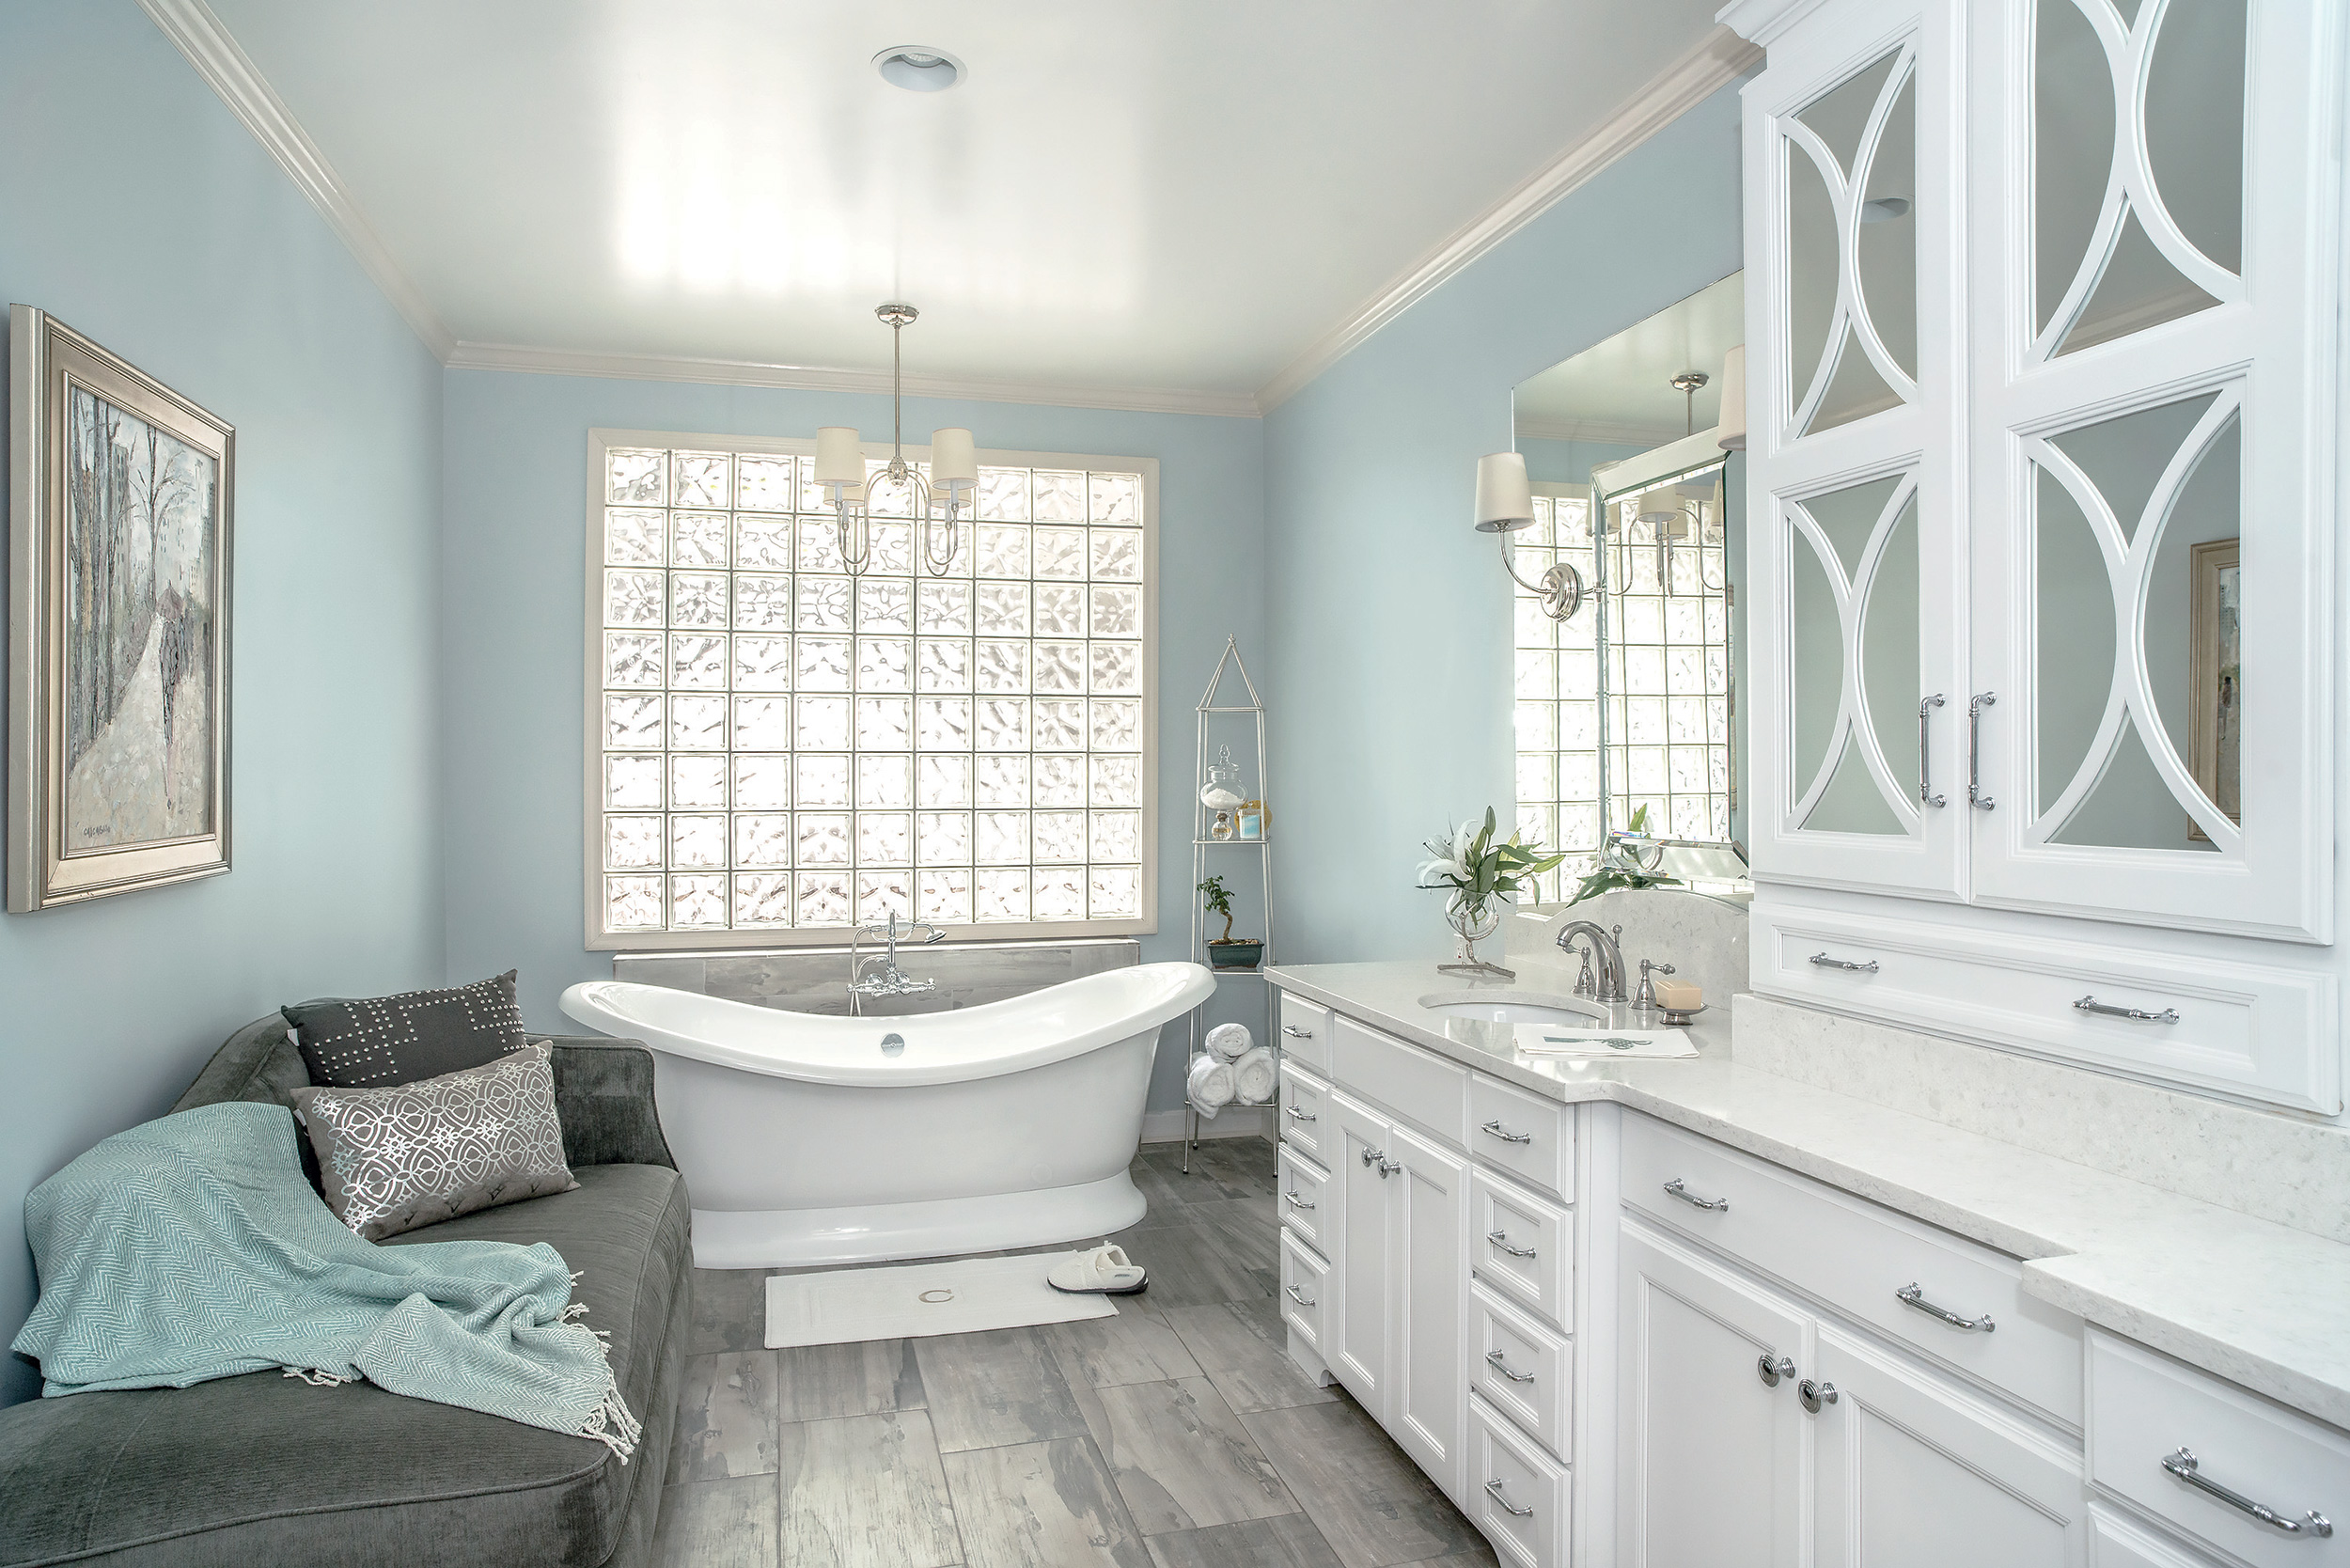 Bathroom trends for 2017 haskell 39 s blog for Bathroom trends 2018